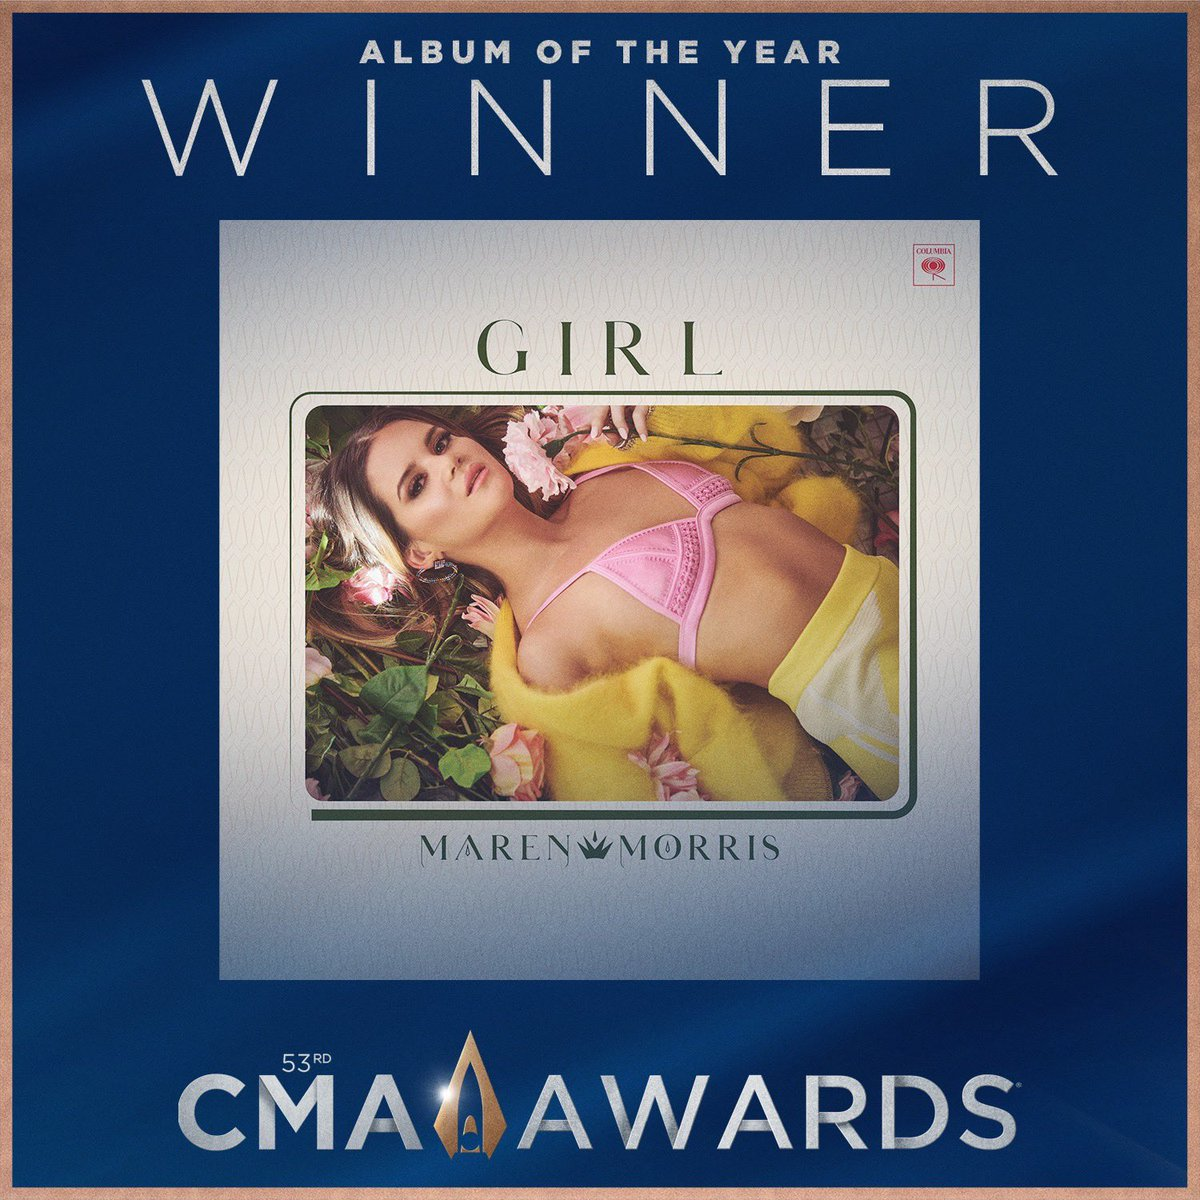 It's been almost a whole year since I was so lucky to hear this album in London. I knew back then that it was truly special. Could not be more proud of you MM 💖✨@MarenMorris #GIRL #CMAawards2019 #AlbumOfTheYear